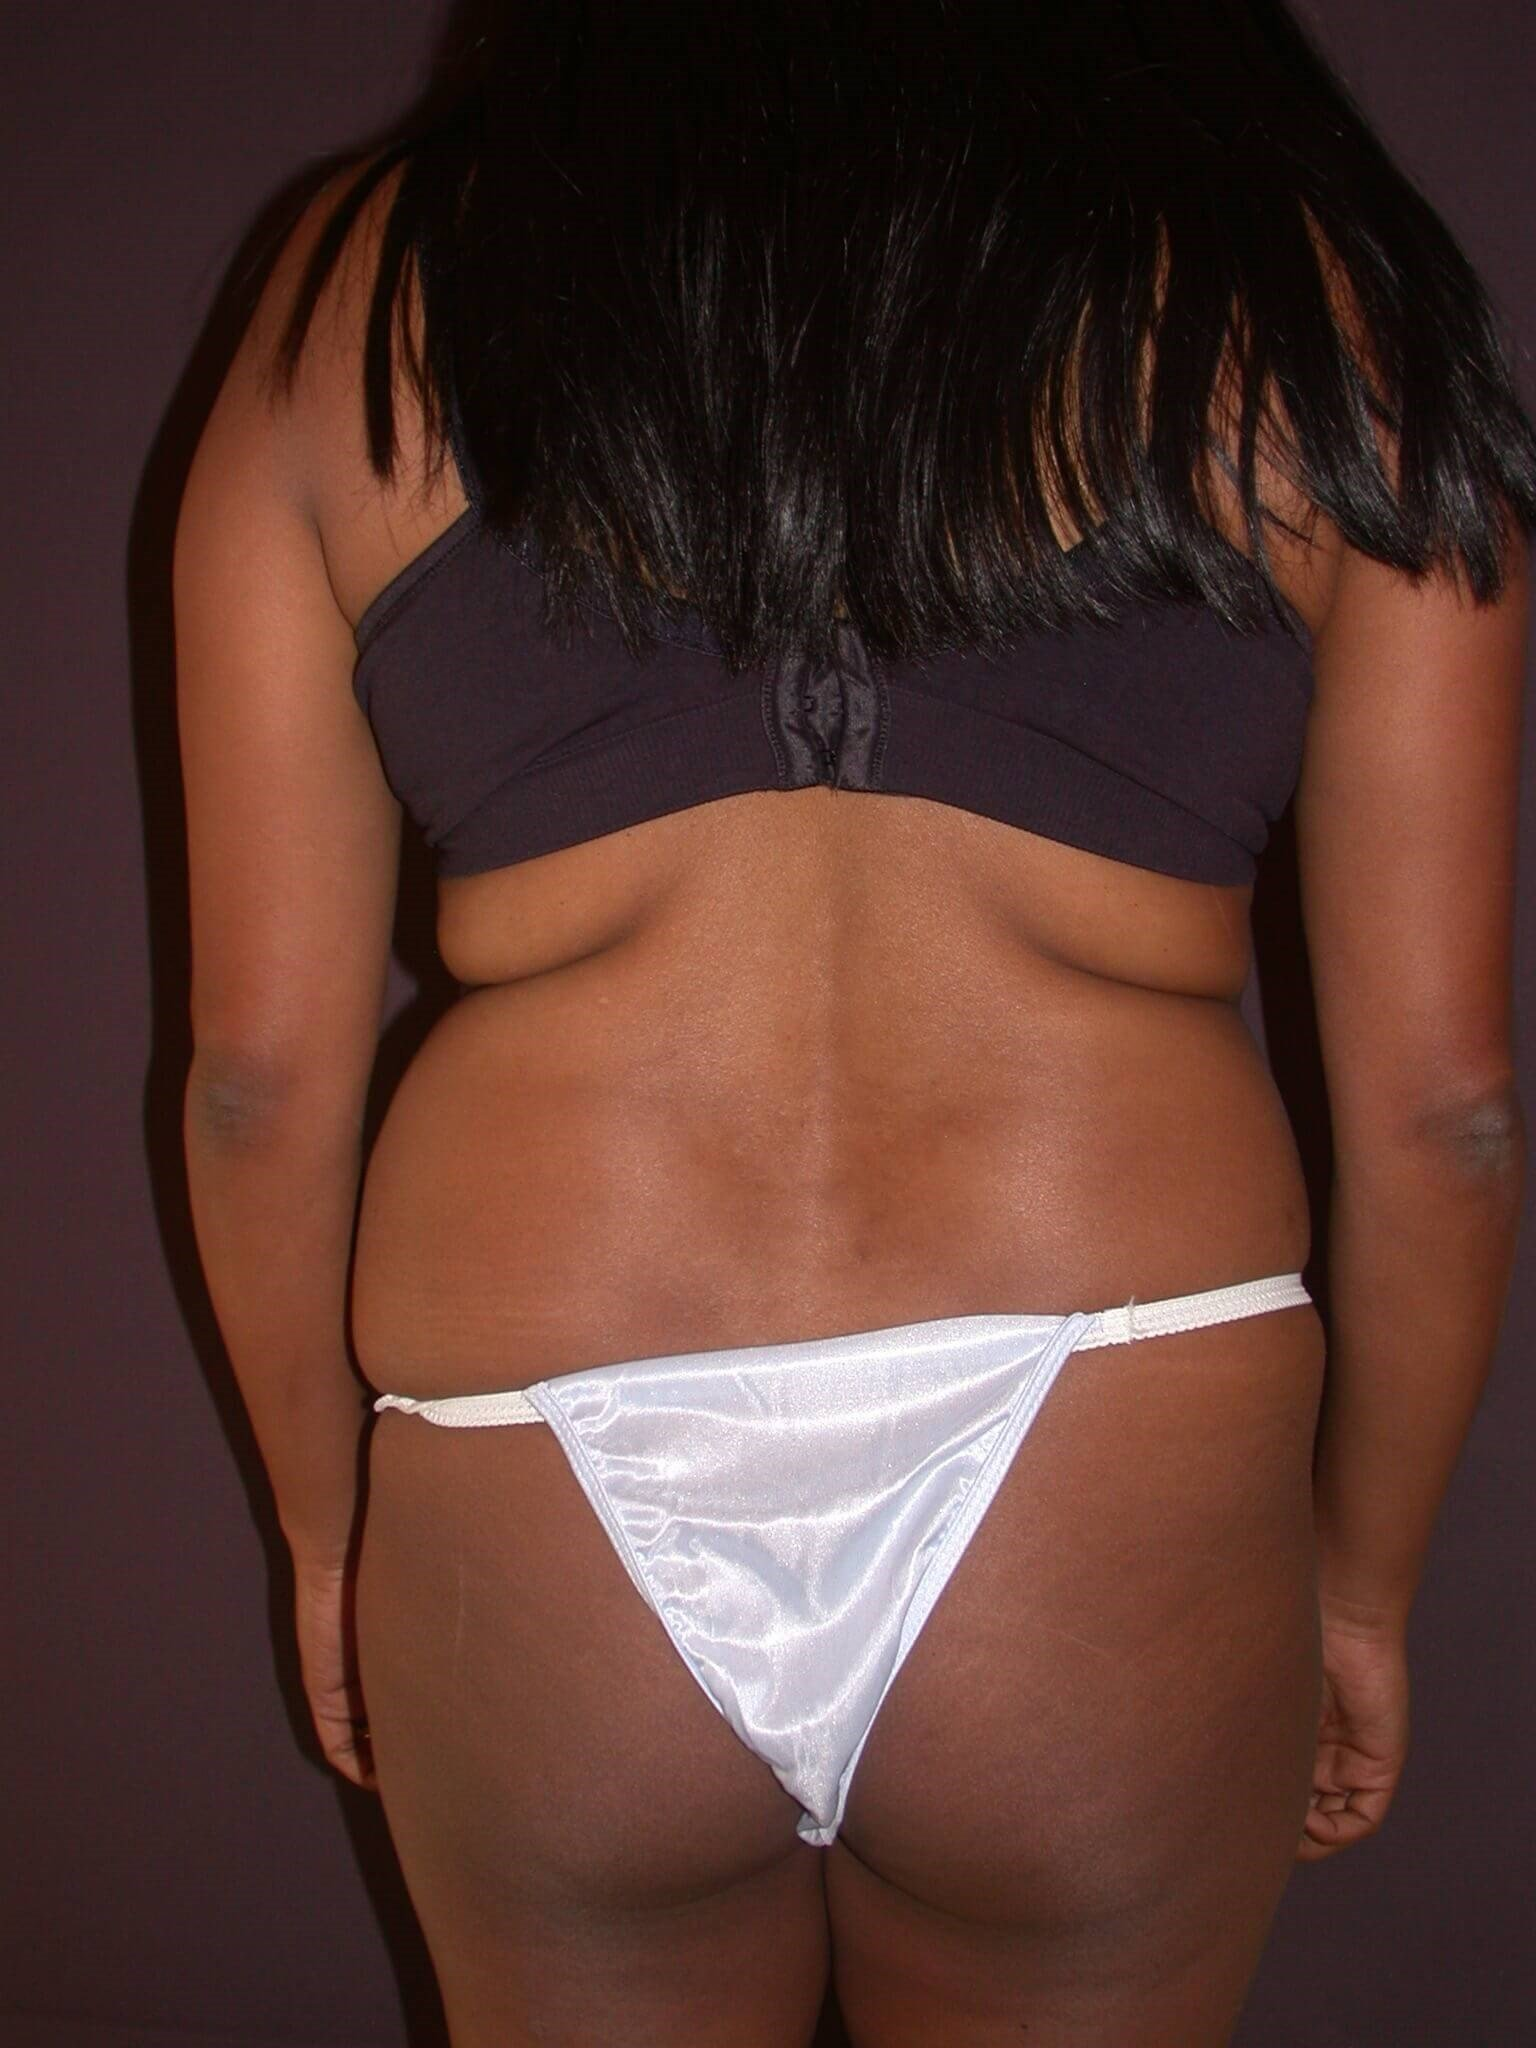 Abdominoplasty Back view Before